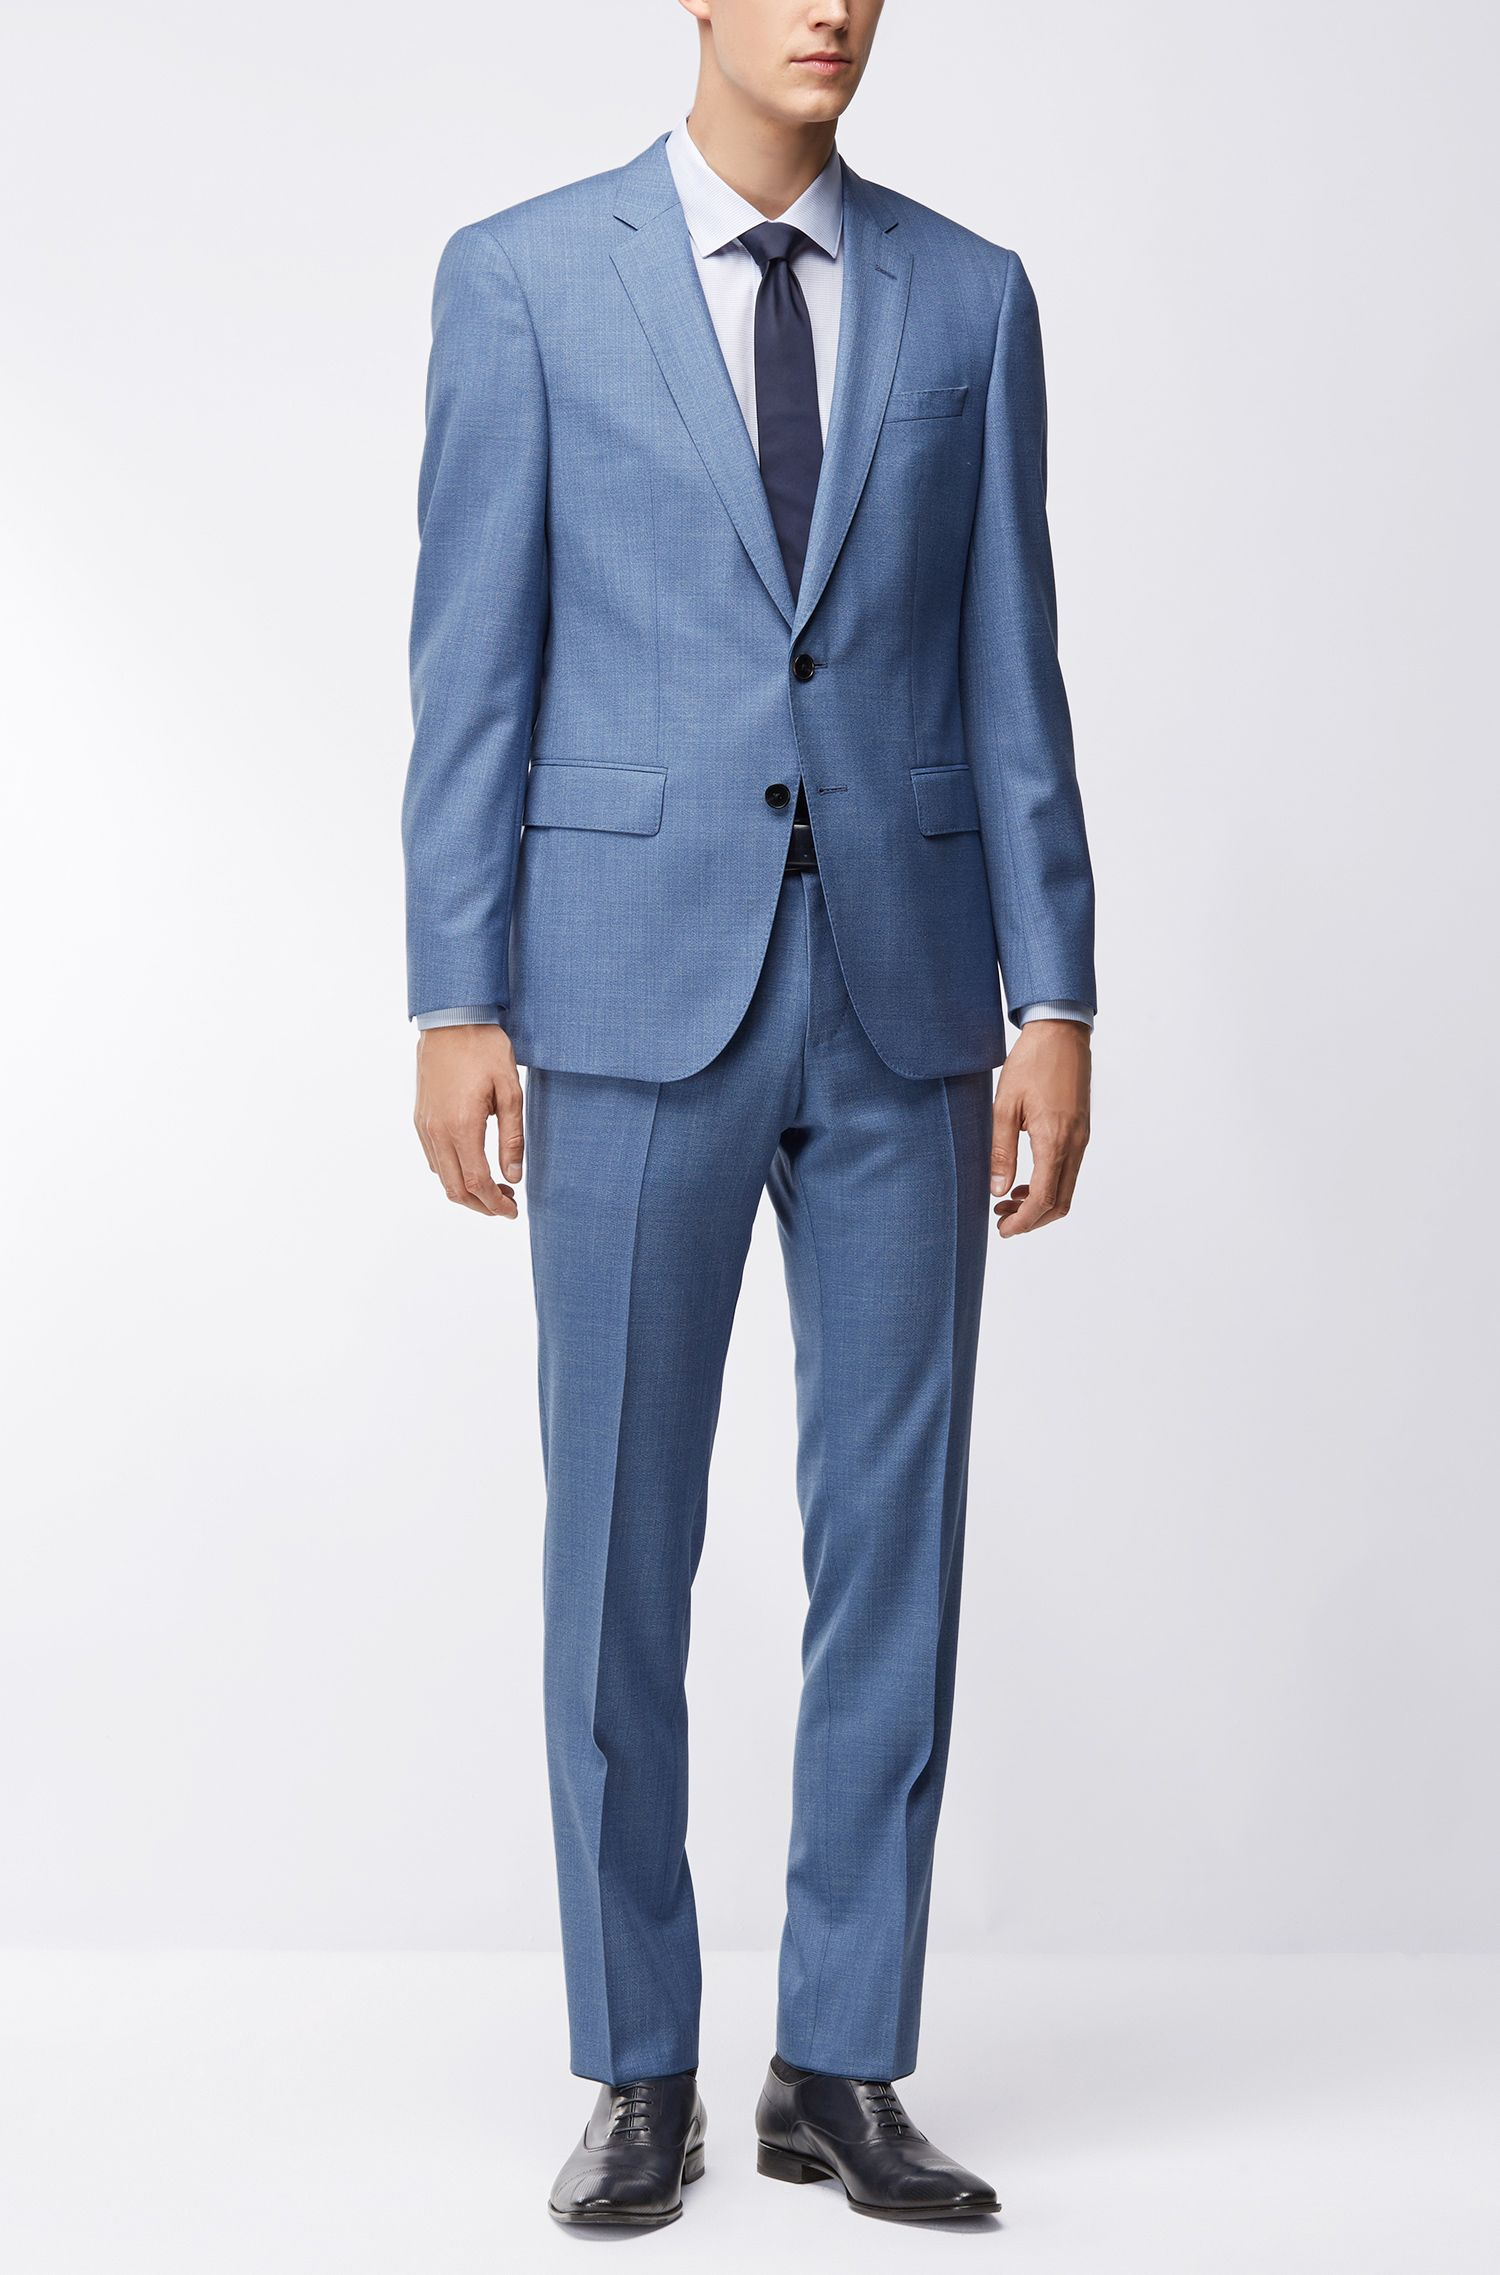 Super 120s Virgin Wool Suit, Slim Fit | Huge/Genius, Light Blue